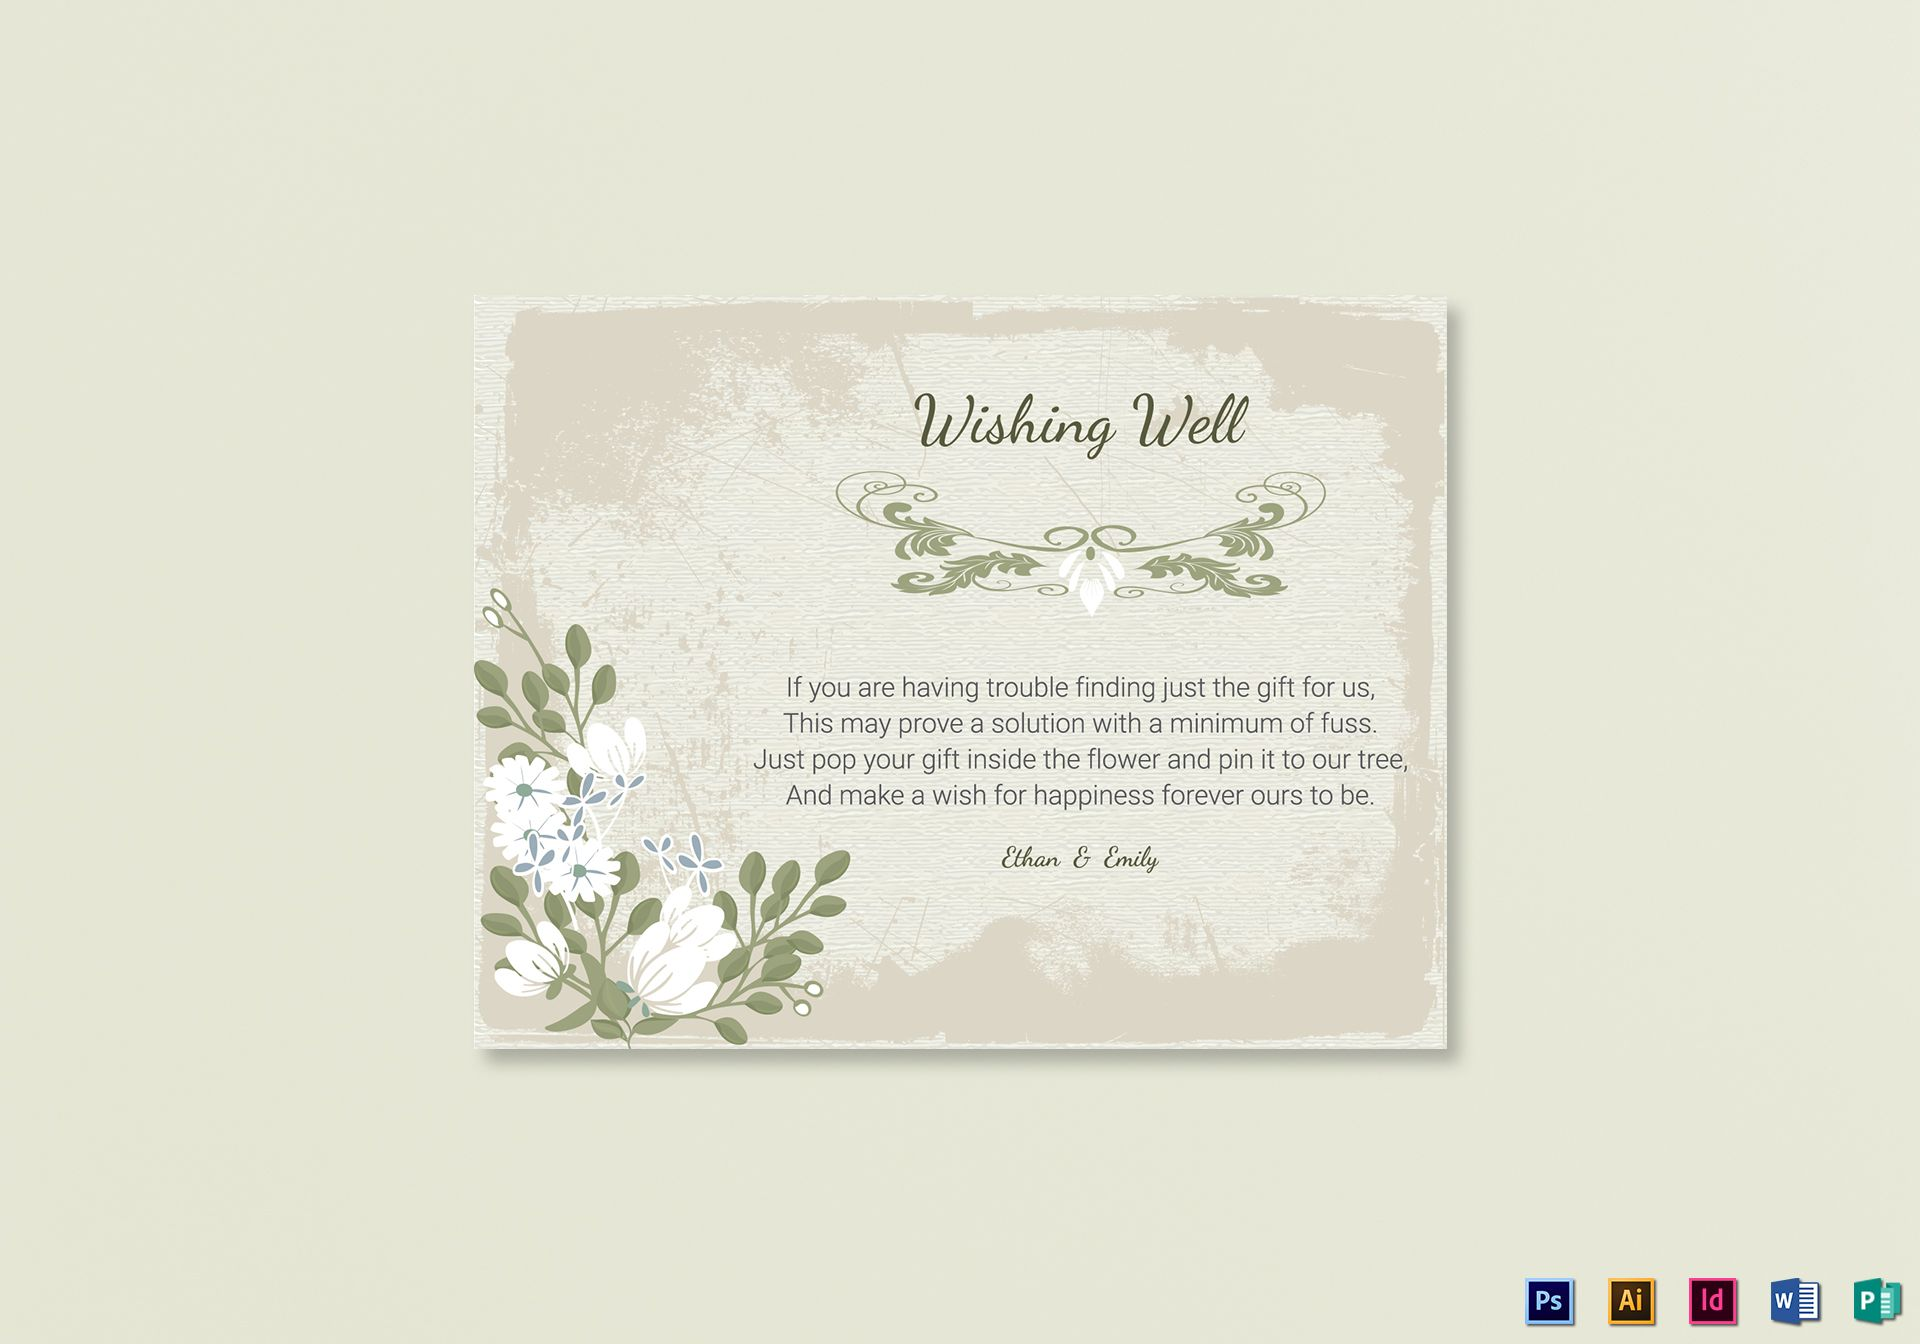 Vintage Wishing Well Card Template